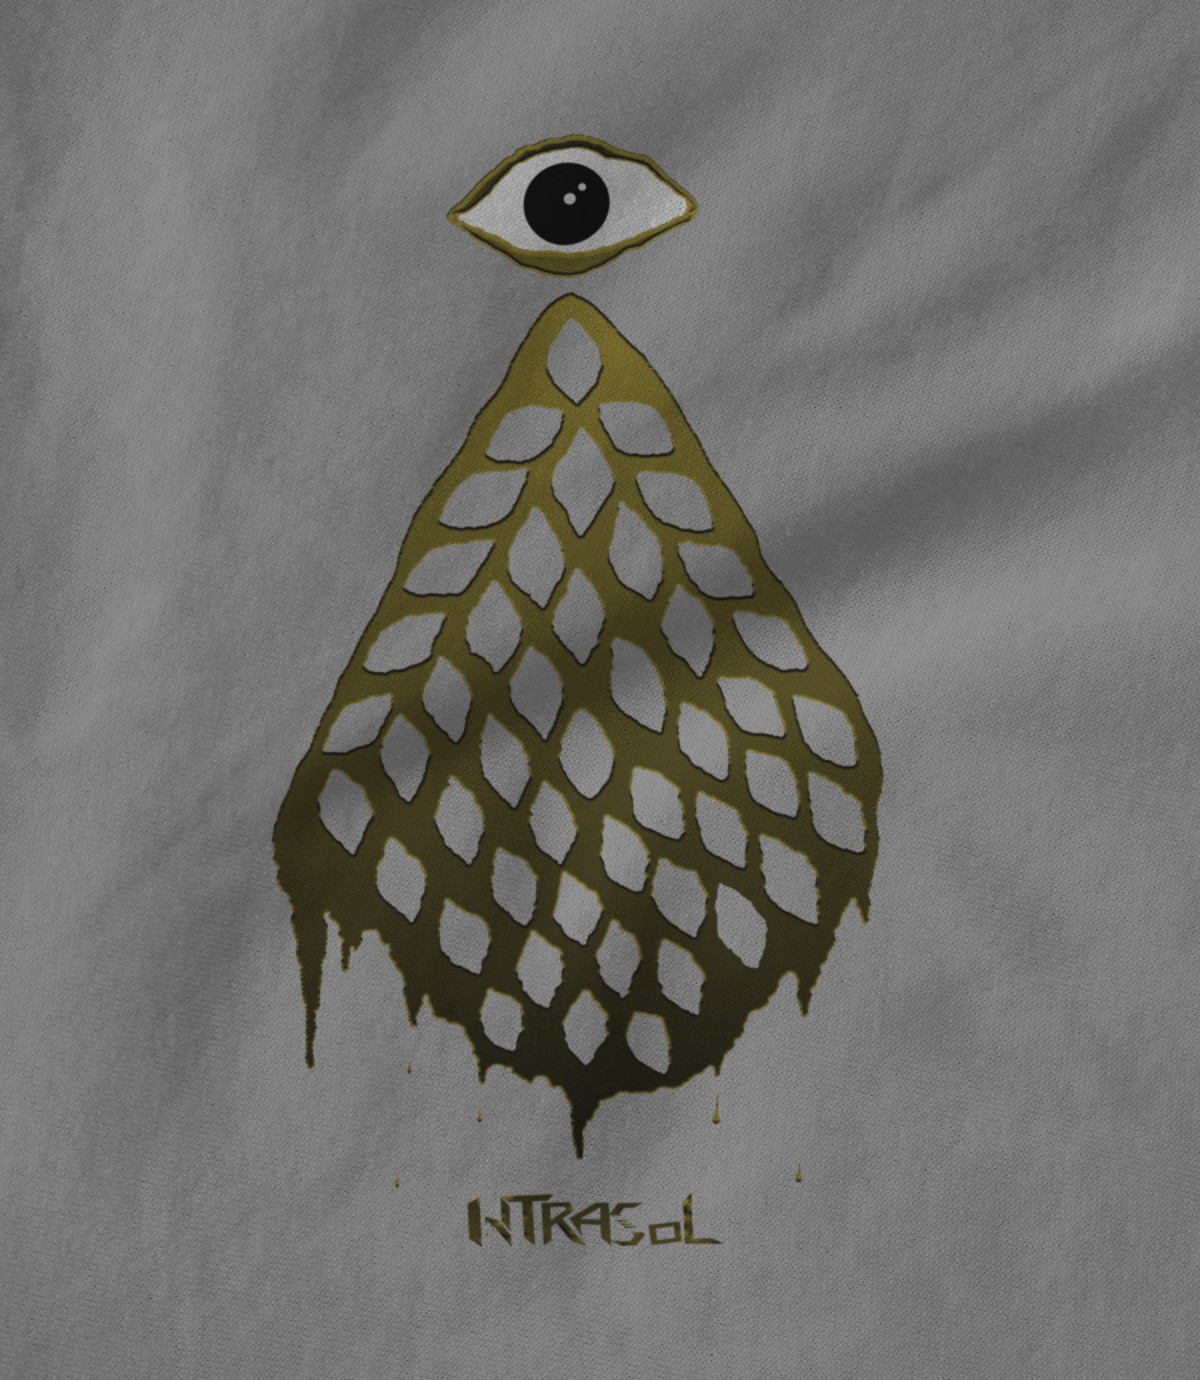 Intrasol pineal gland gold 1516041763